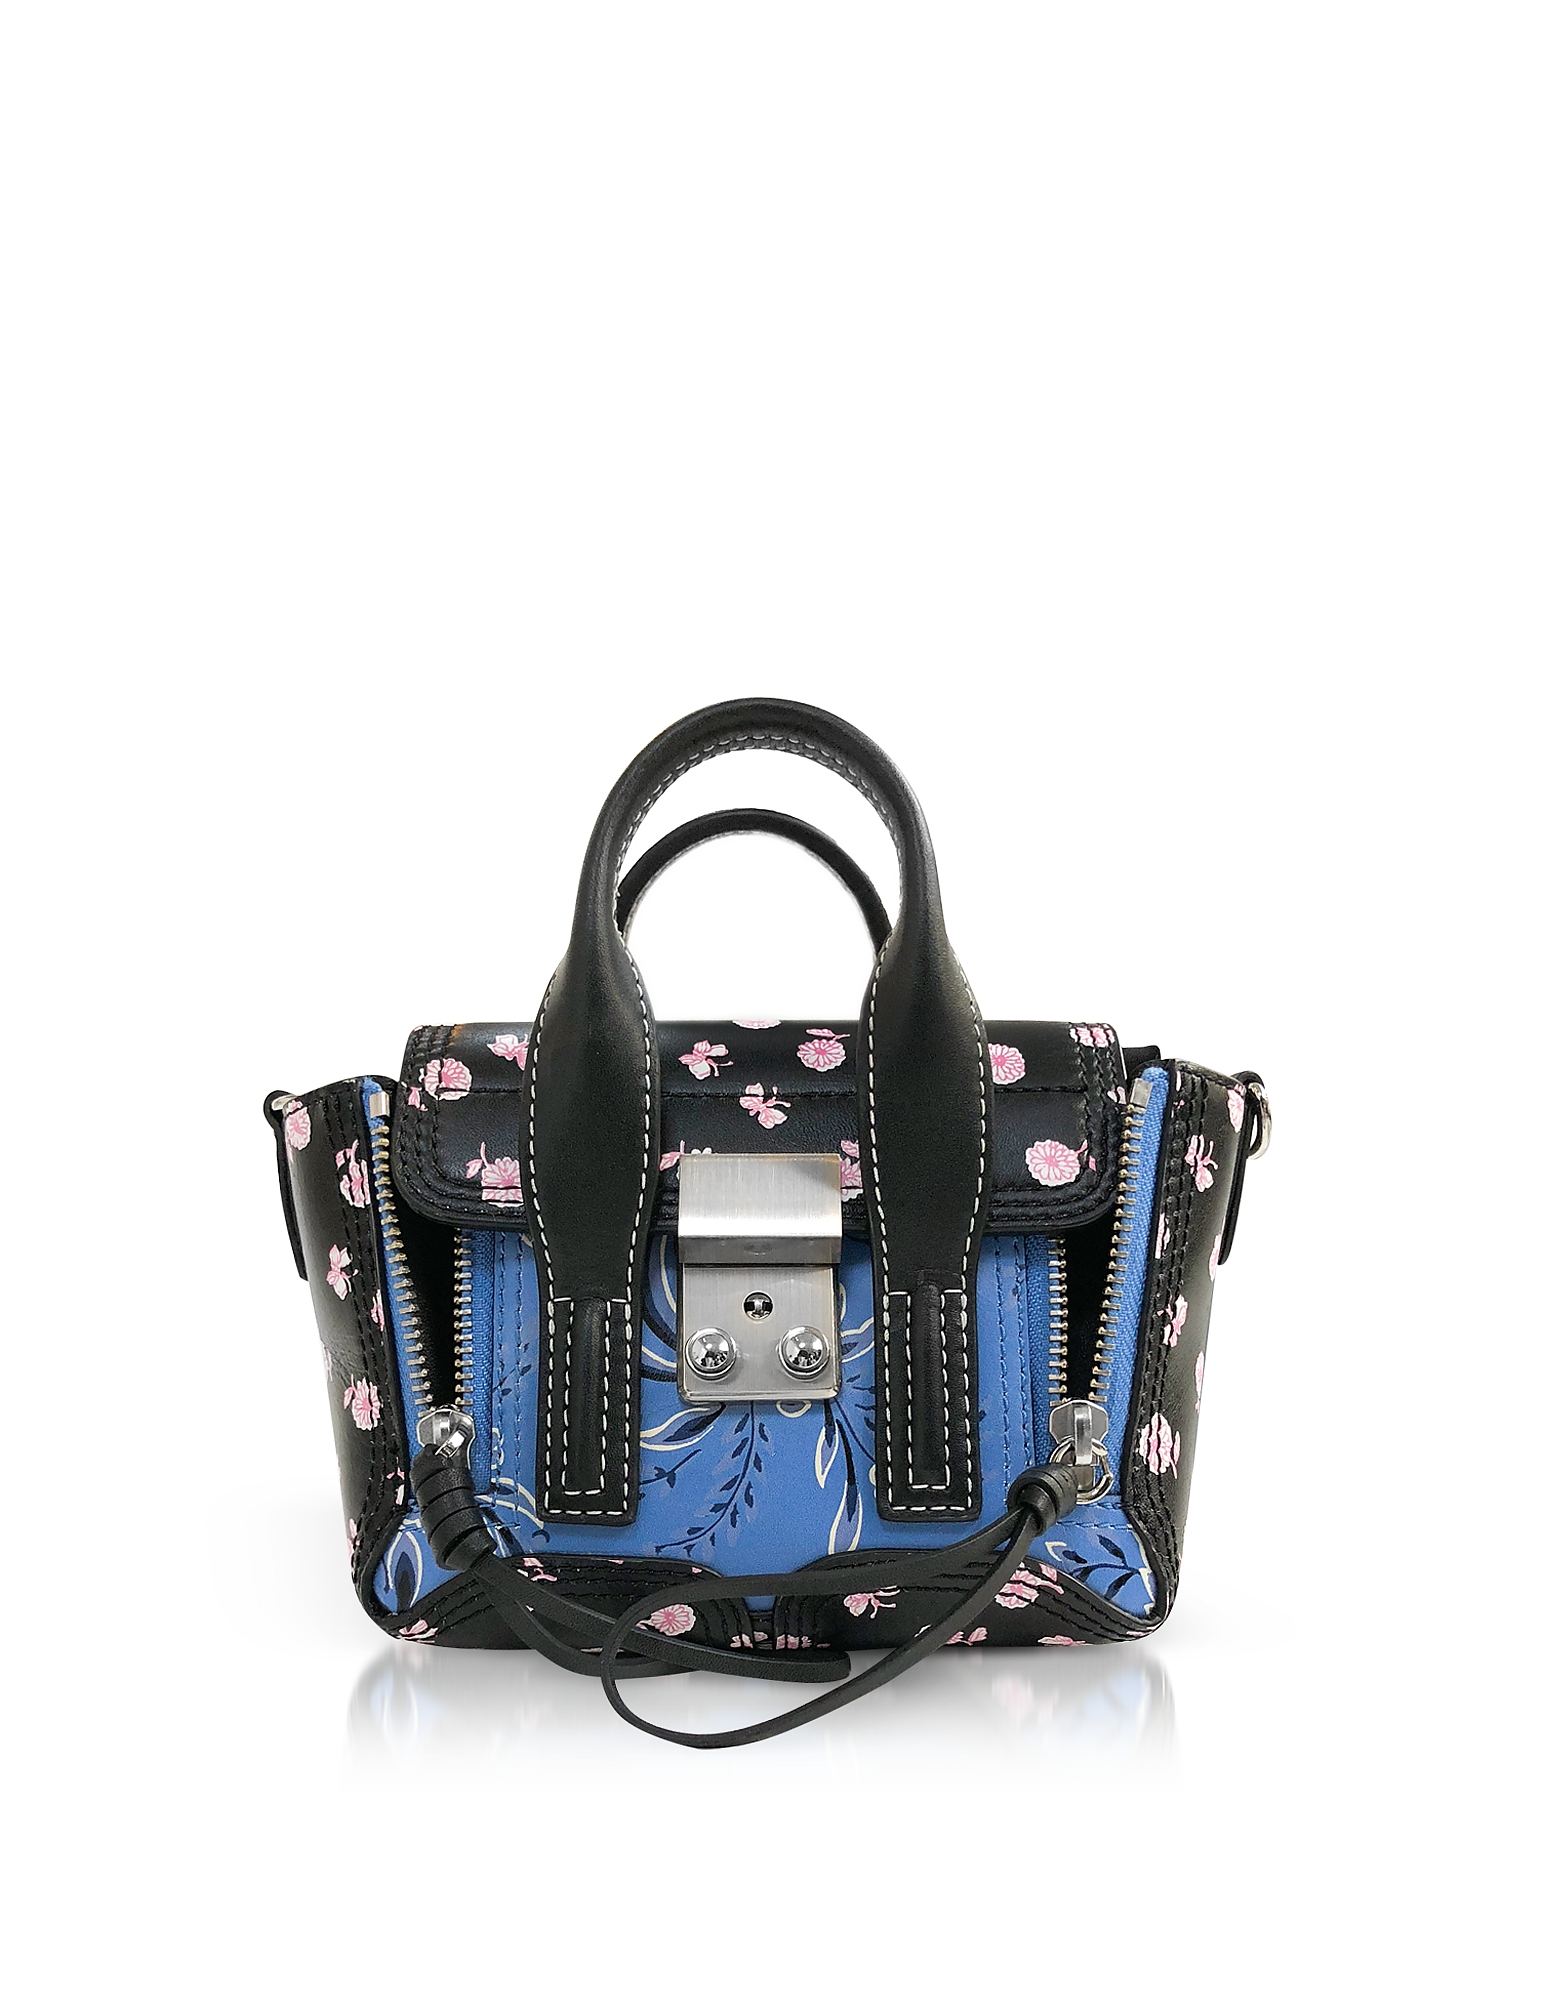 Image of 3.1 Phillip Lim Designer Handbags, Black Multi Printed Leather Pashli Nano Satchel